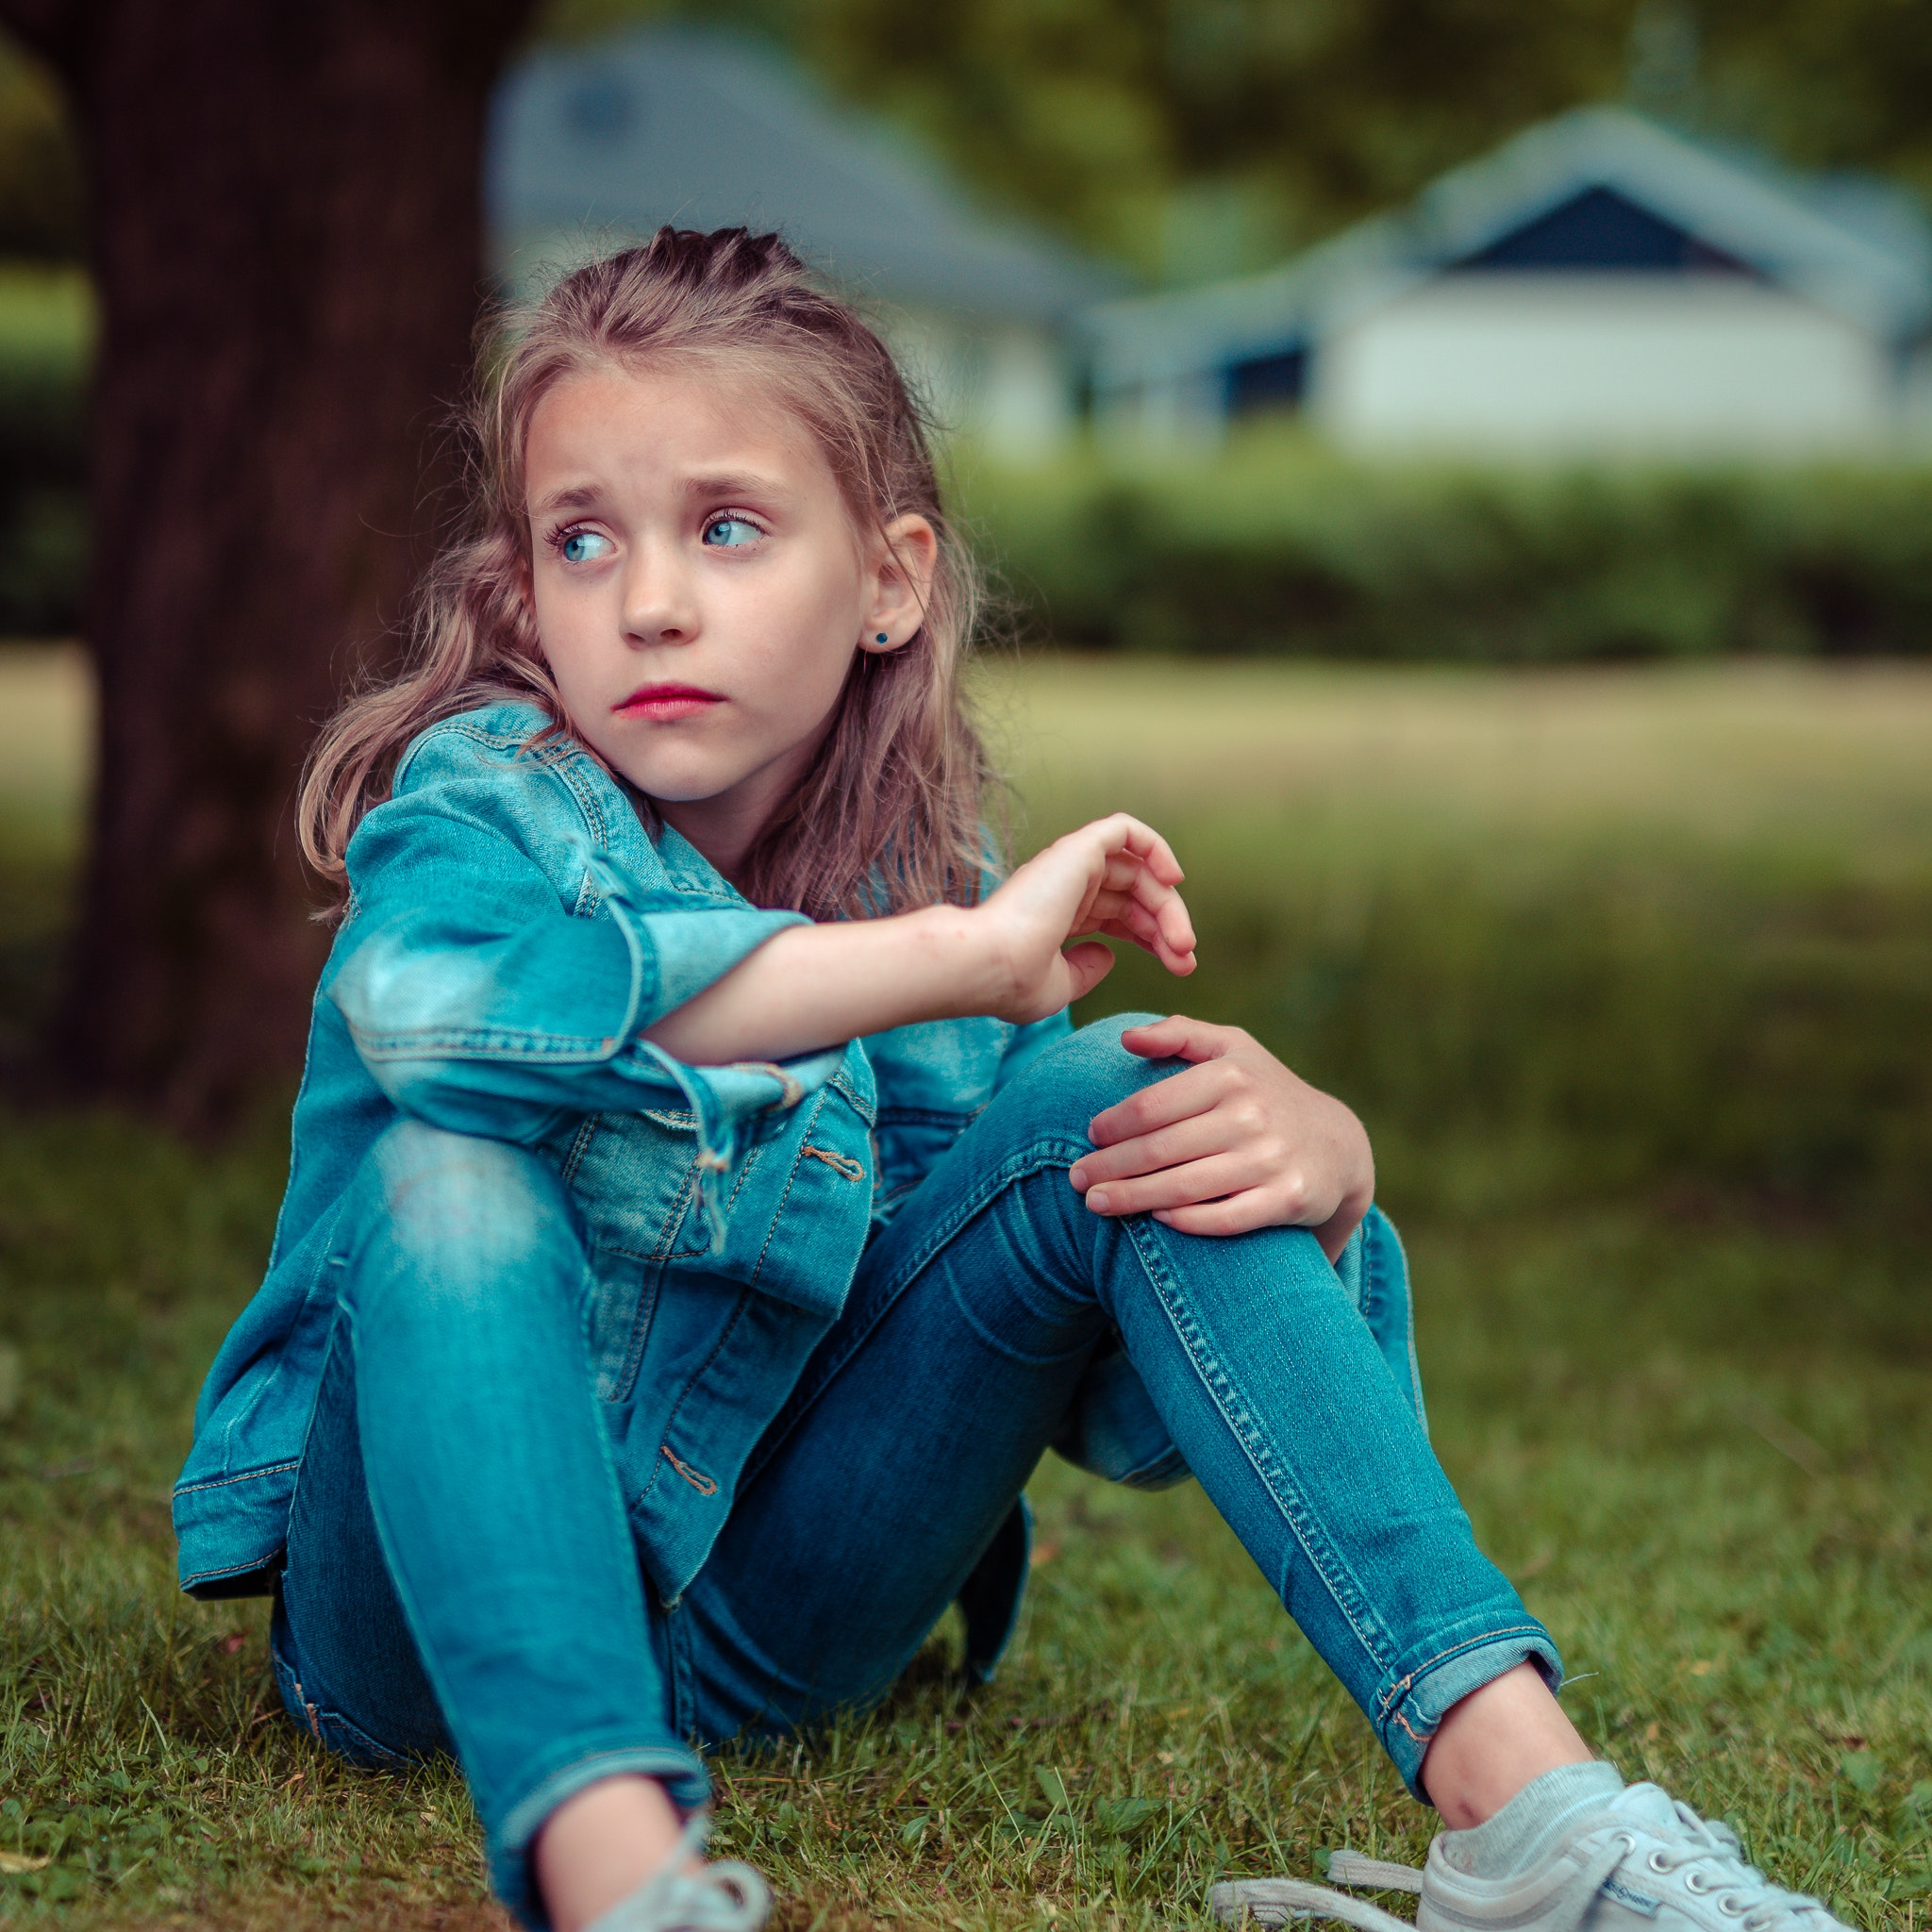 Scientists Identify the 4 Worst States for Teen and Child Mental Health